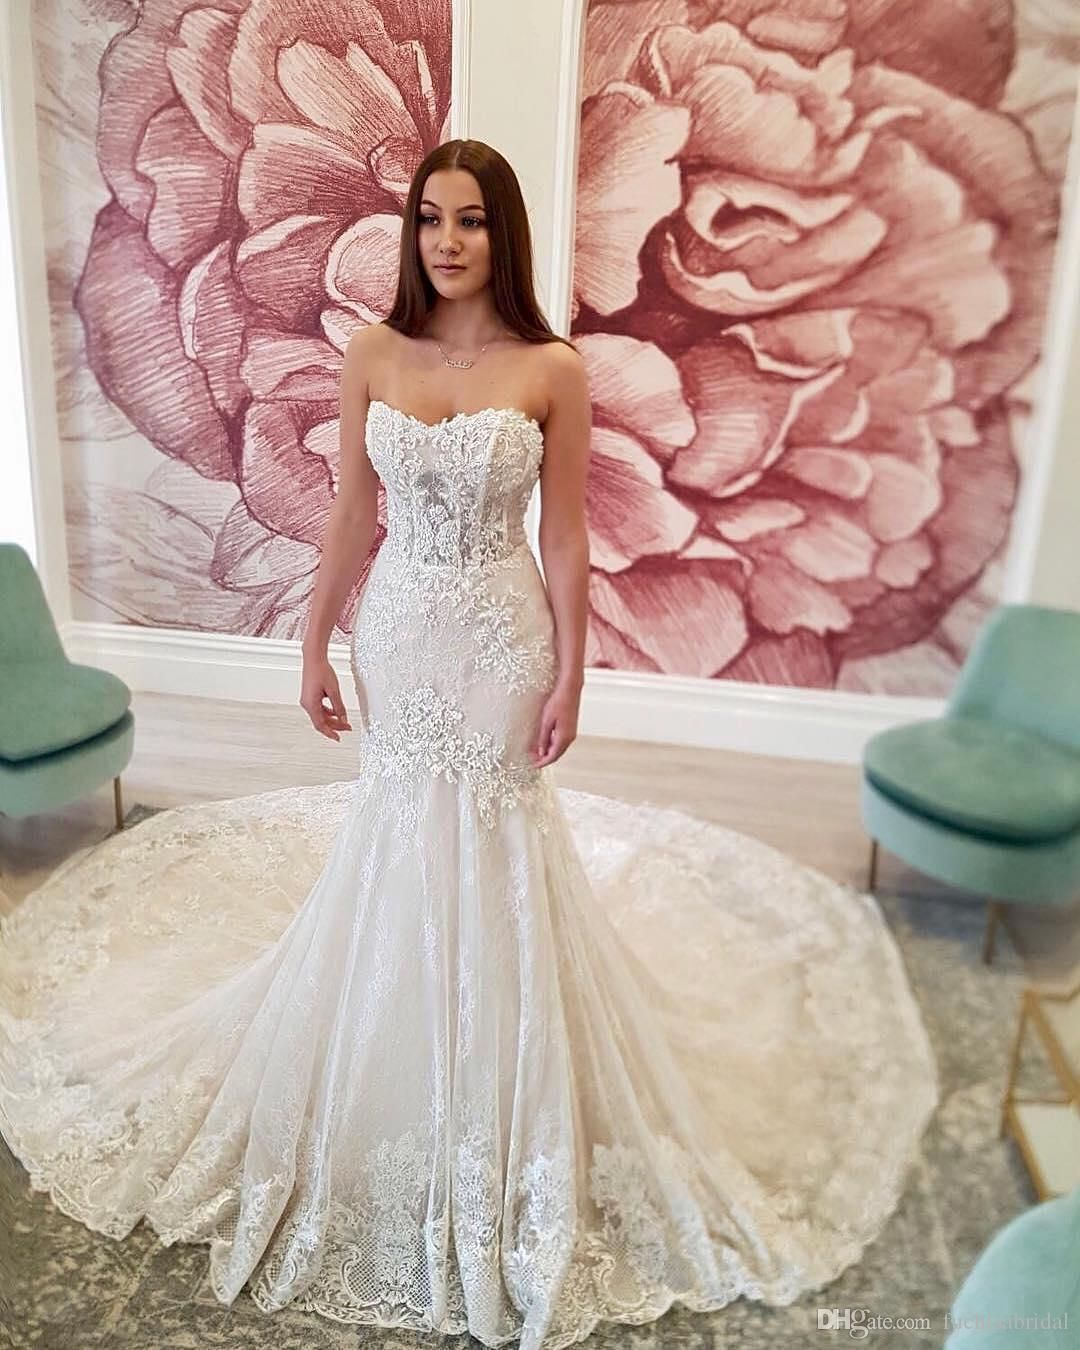 Ivory Lace Bodice Ball Gown Wedding Dress With Sheer Long: Sleeveless Ivory Lace Mermaid Wedding Dresses Sheer Bodice